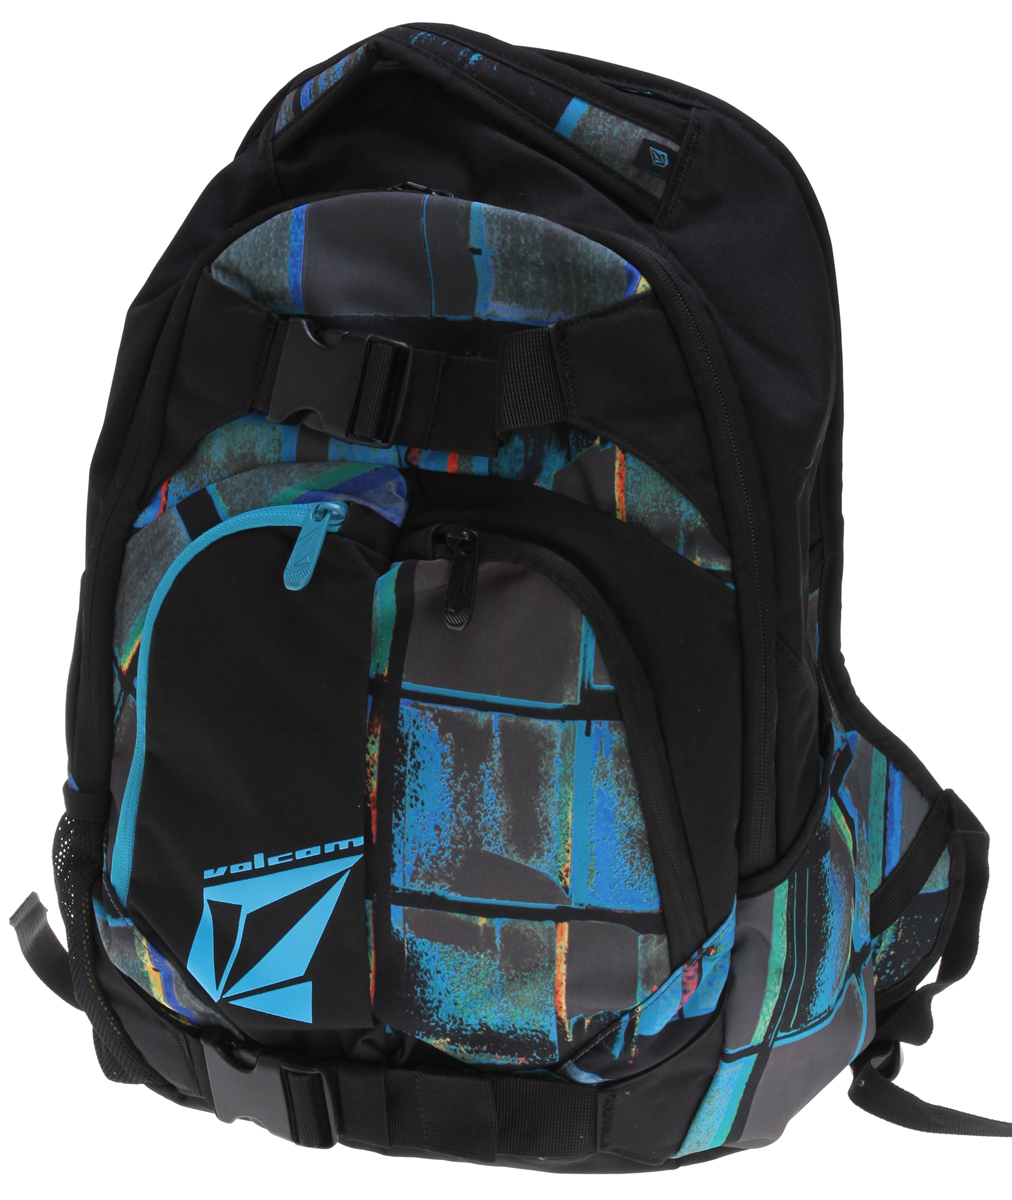 "Surf Key Features of the Volcom Equilibrium Stoneage Backpack: Volume: 1891in³ [31L] Dimensions: 19.75 x 13 x 7.75"" [50 x 33 x 20cm] Weight: 1.5lb [0.66kg] Three compartment backpack with 'Volcom/Stone' gel prints 300D polyester - $33.95"